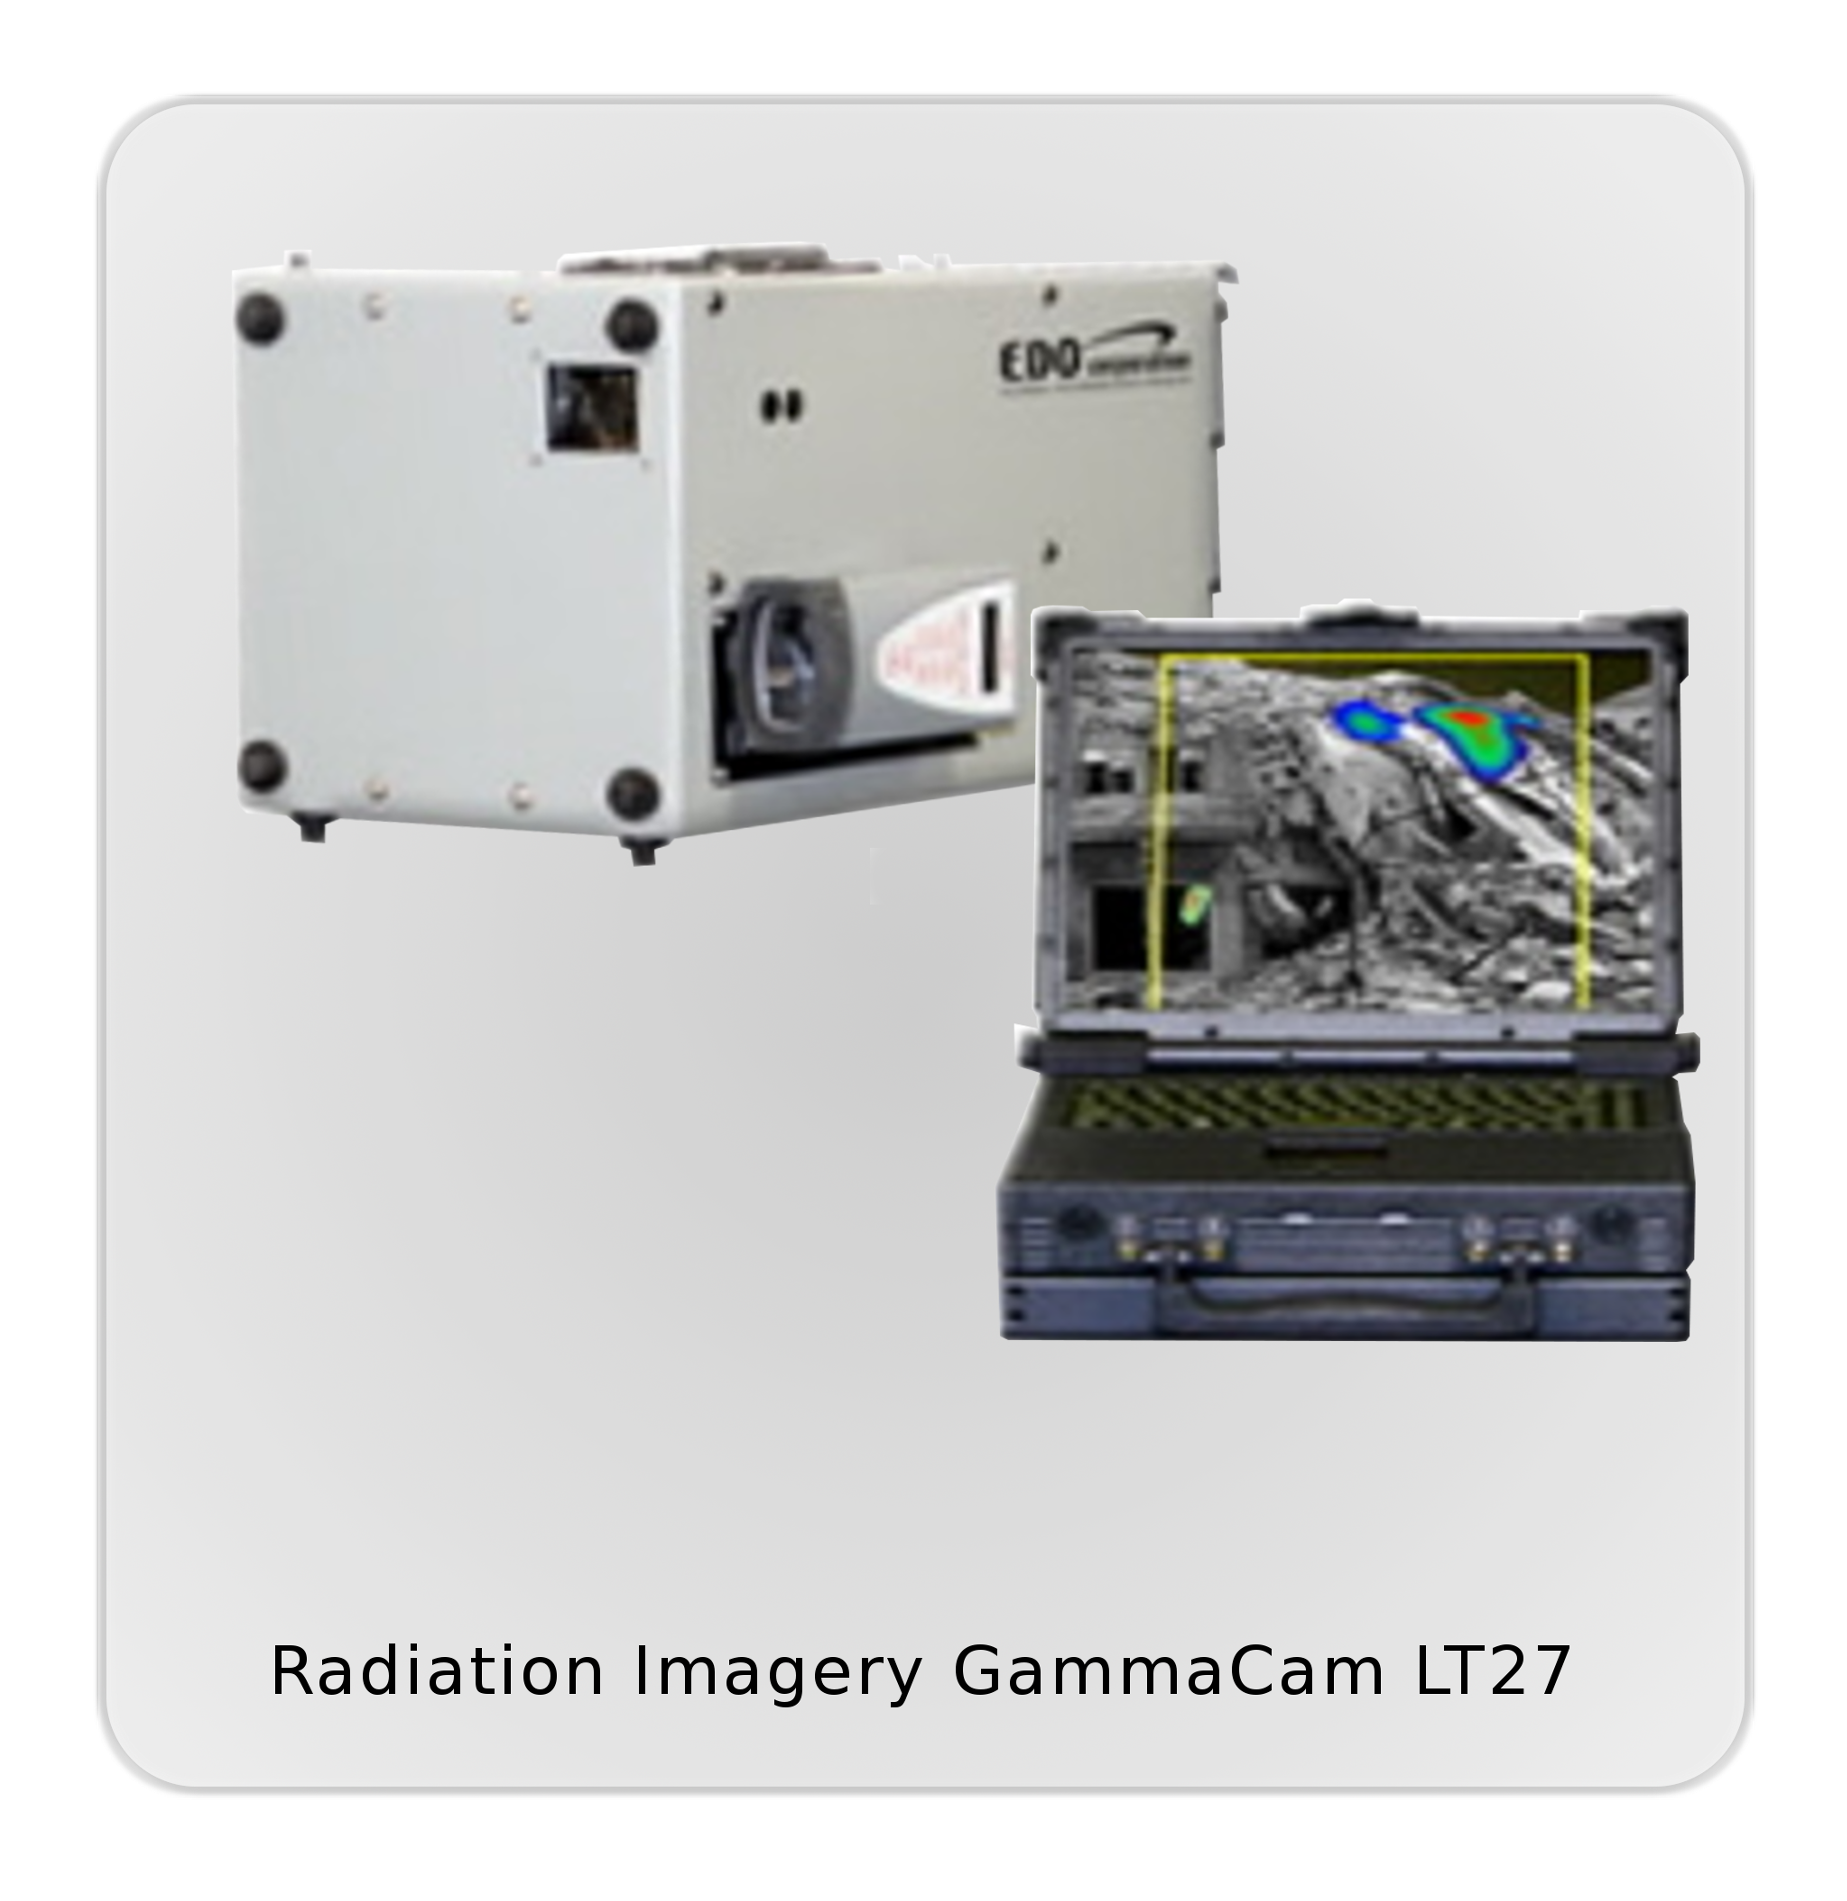 kassay-ram2000-spectrometers-products-ftir-accessories-radiation-imagery-gammacam-lt27